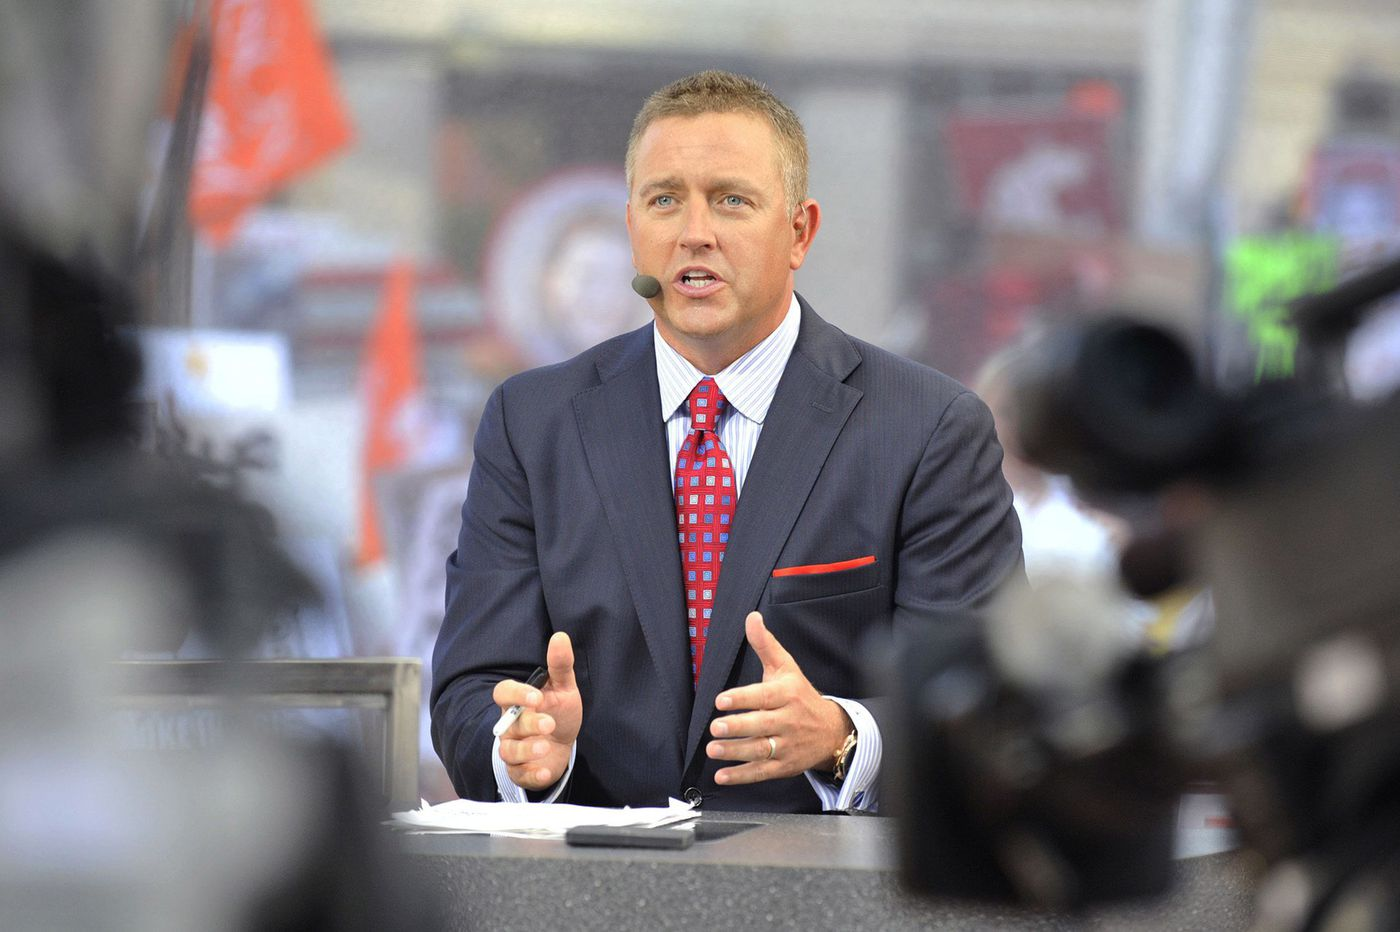 ESPN's College GameDay crew excited to be back at Penn State for annual 'White Out' game